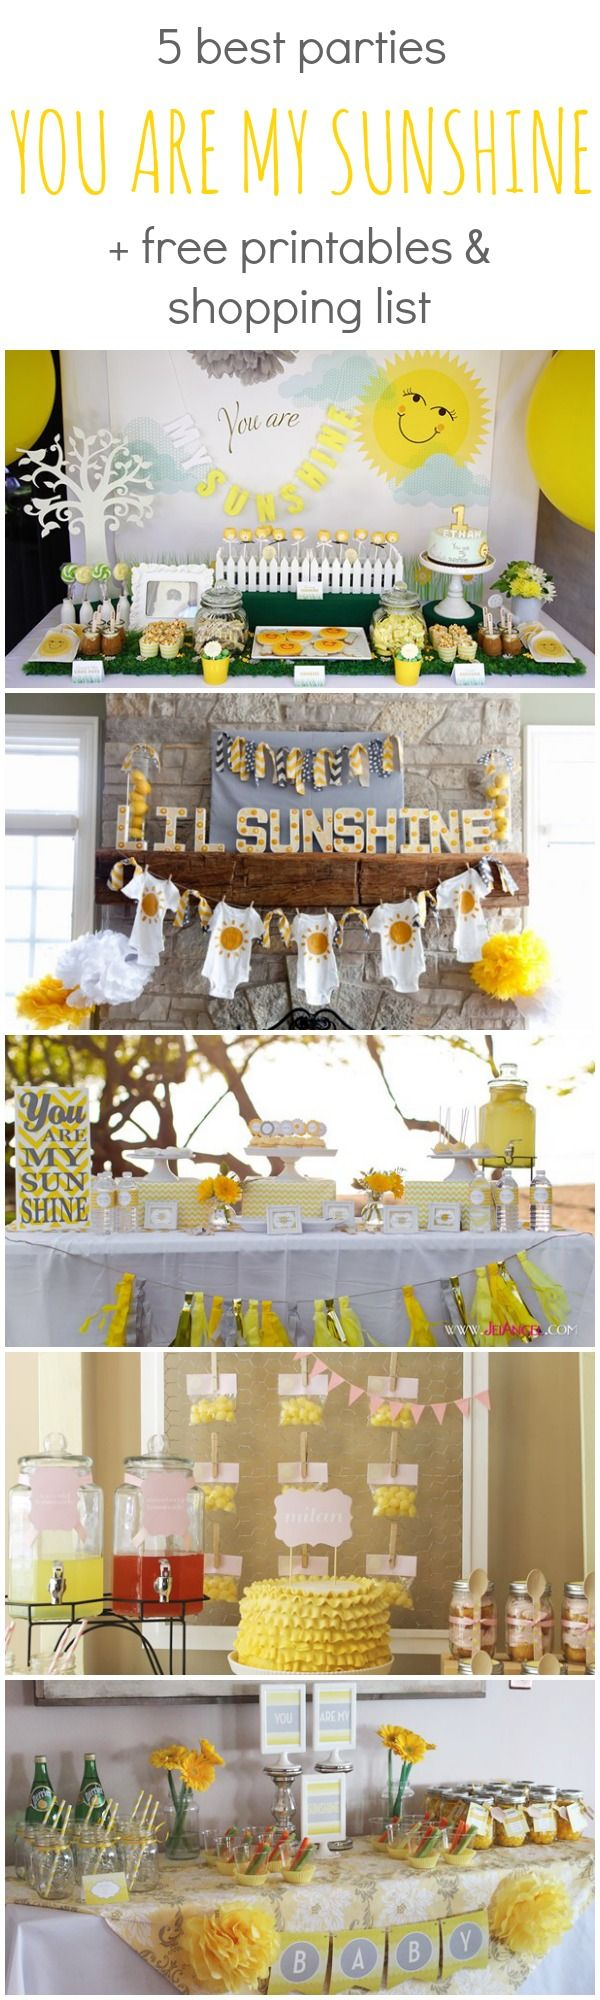 Great ideas for a baby shower OR birthday party! // 5 Best You Are My Sunshine Parties + Free Printables